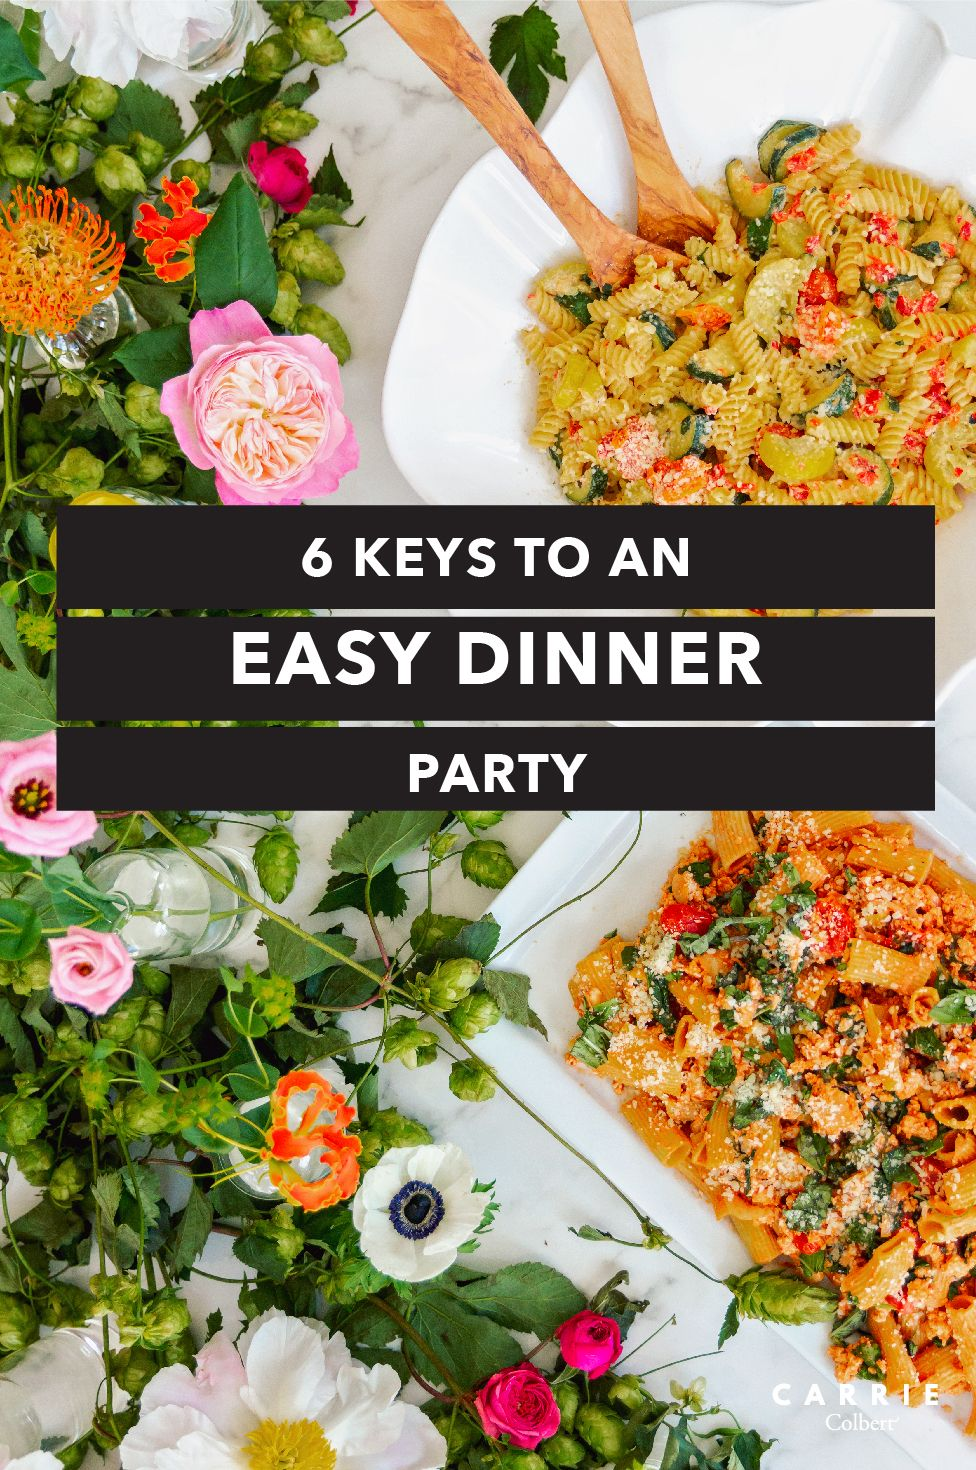 6 Keys To An Easy Dinner Party With Plated Carrie Colbert Entertaining At Home Doesn T Have Be Complicated Here Are Six Hosting